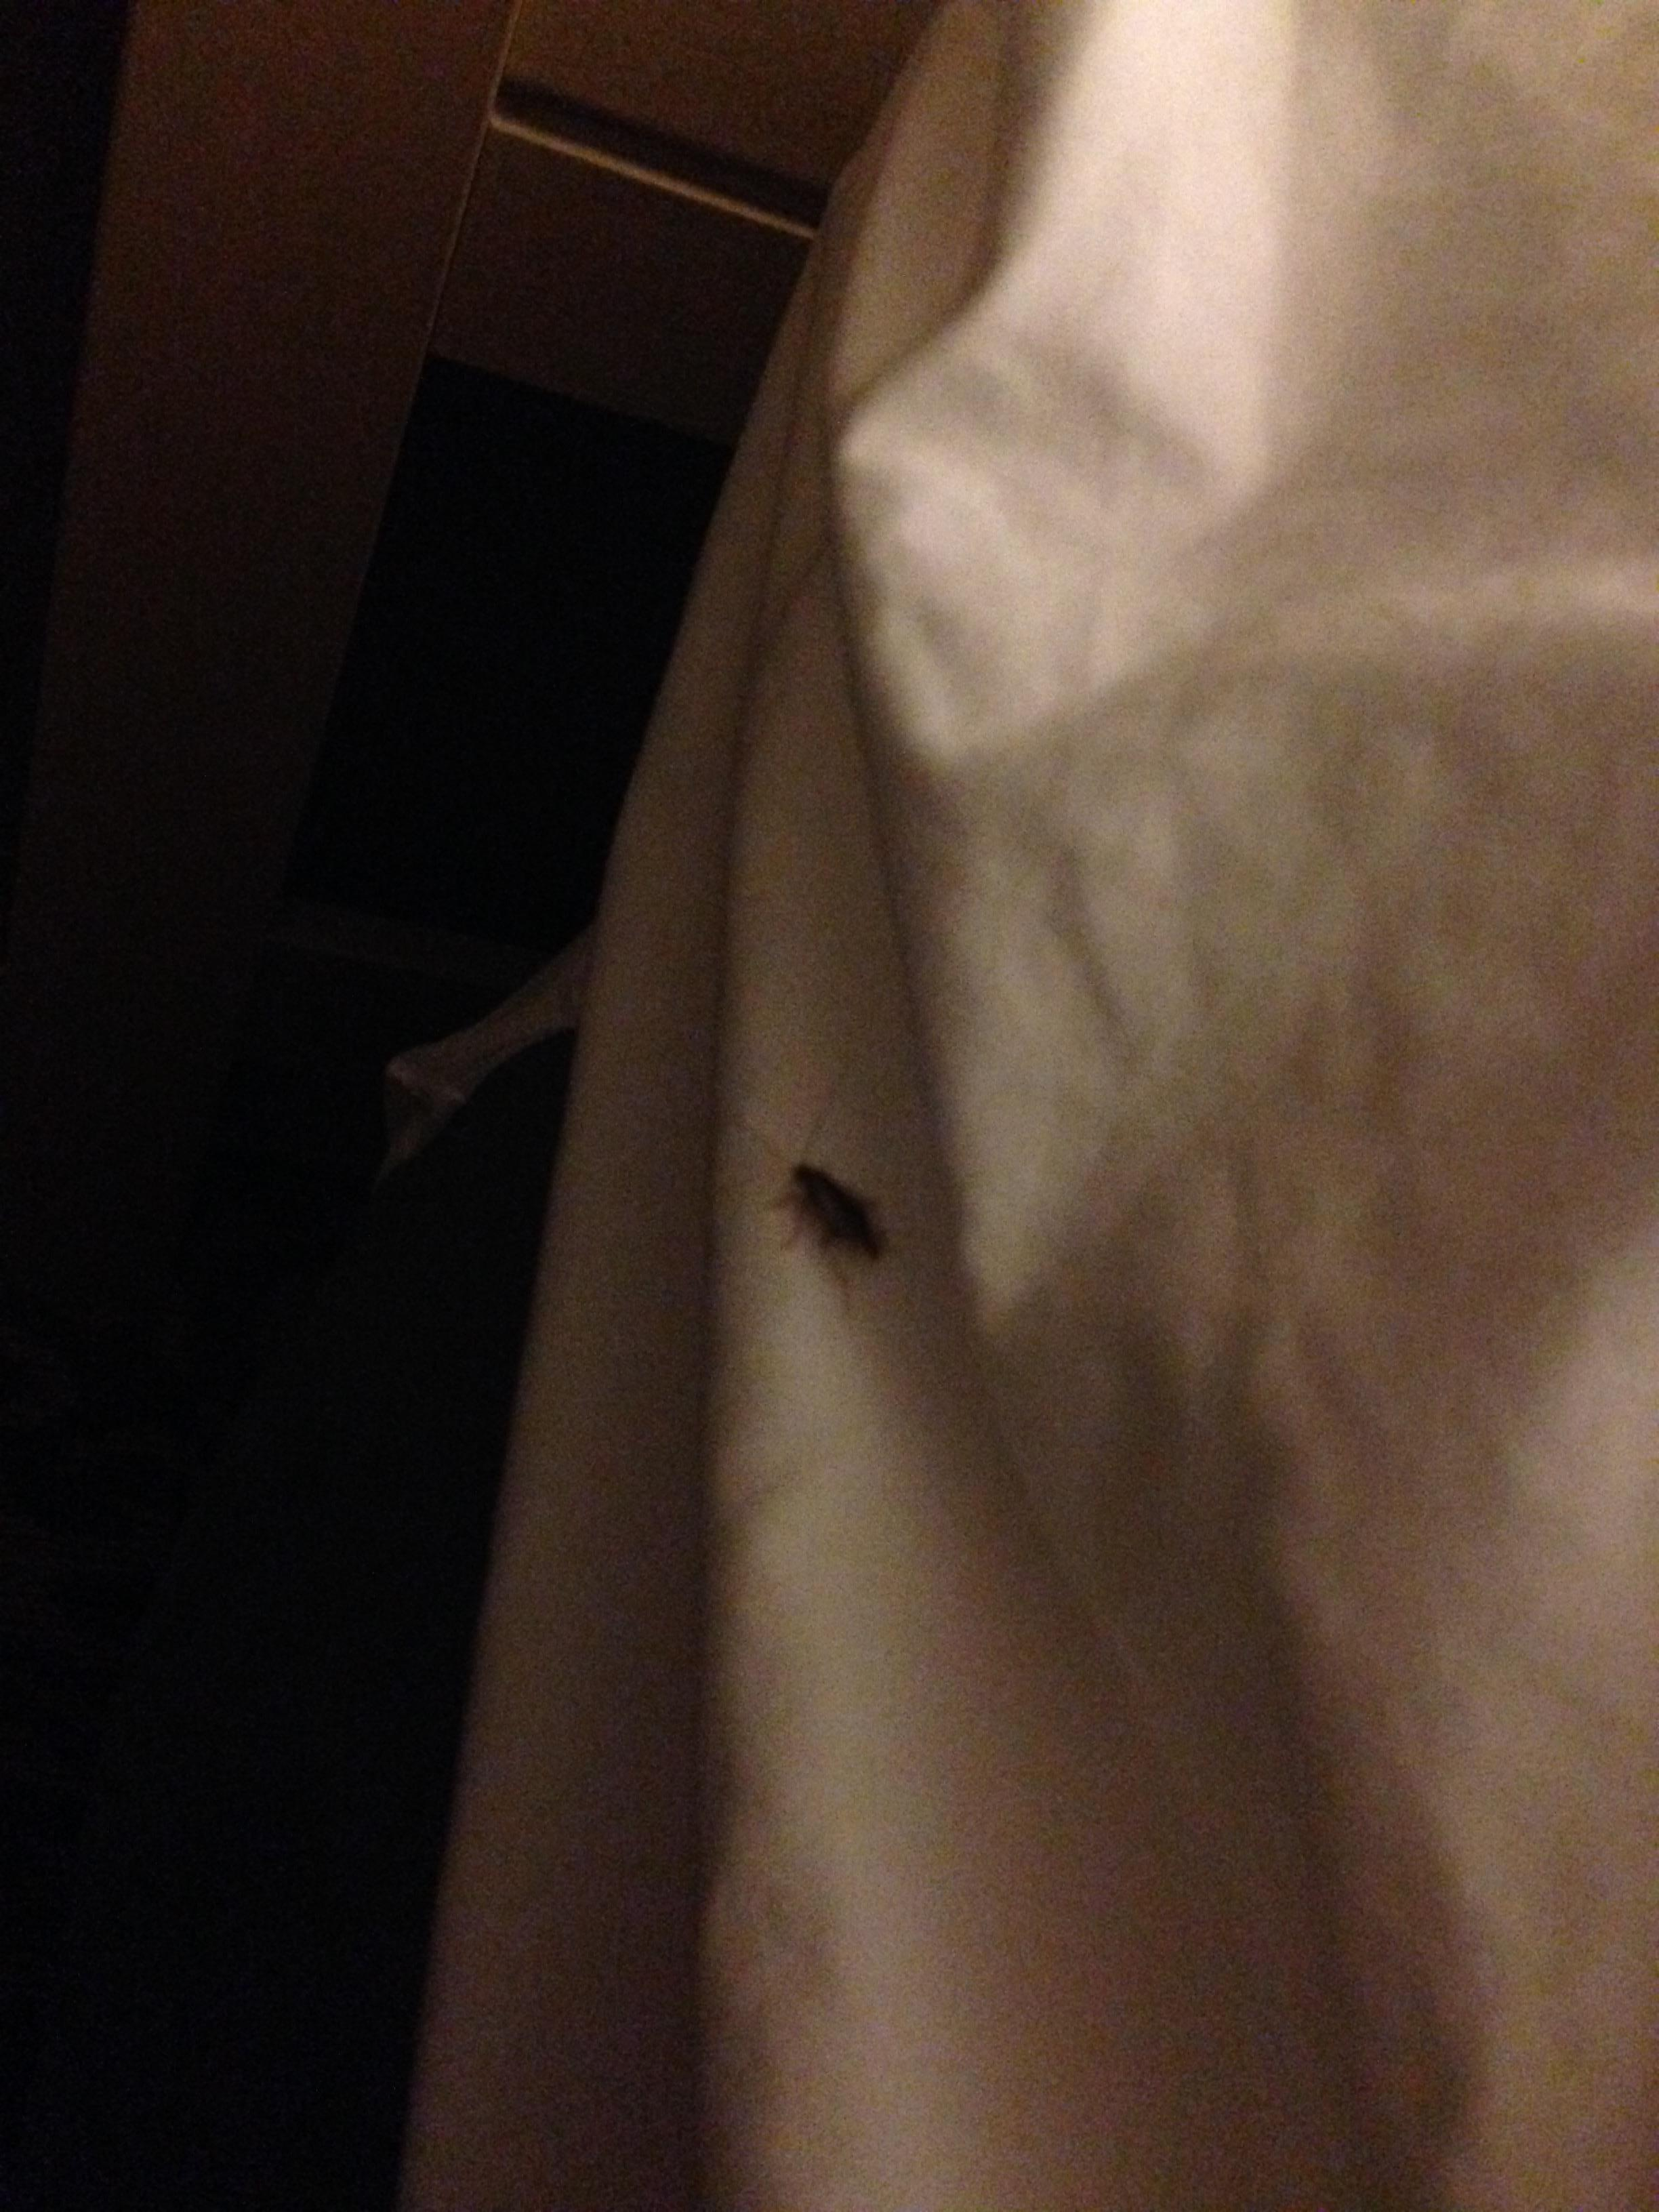 This one was on my bed